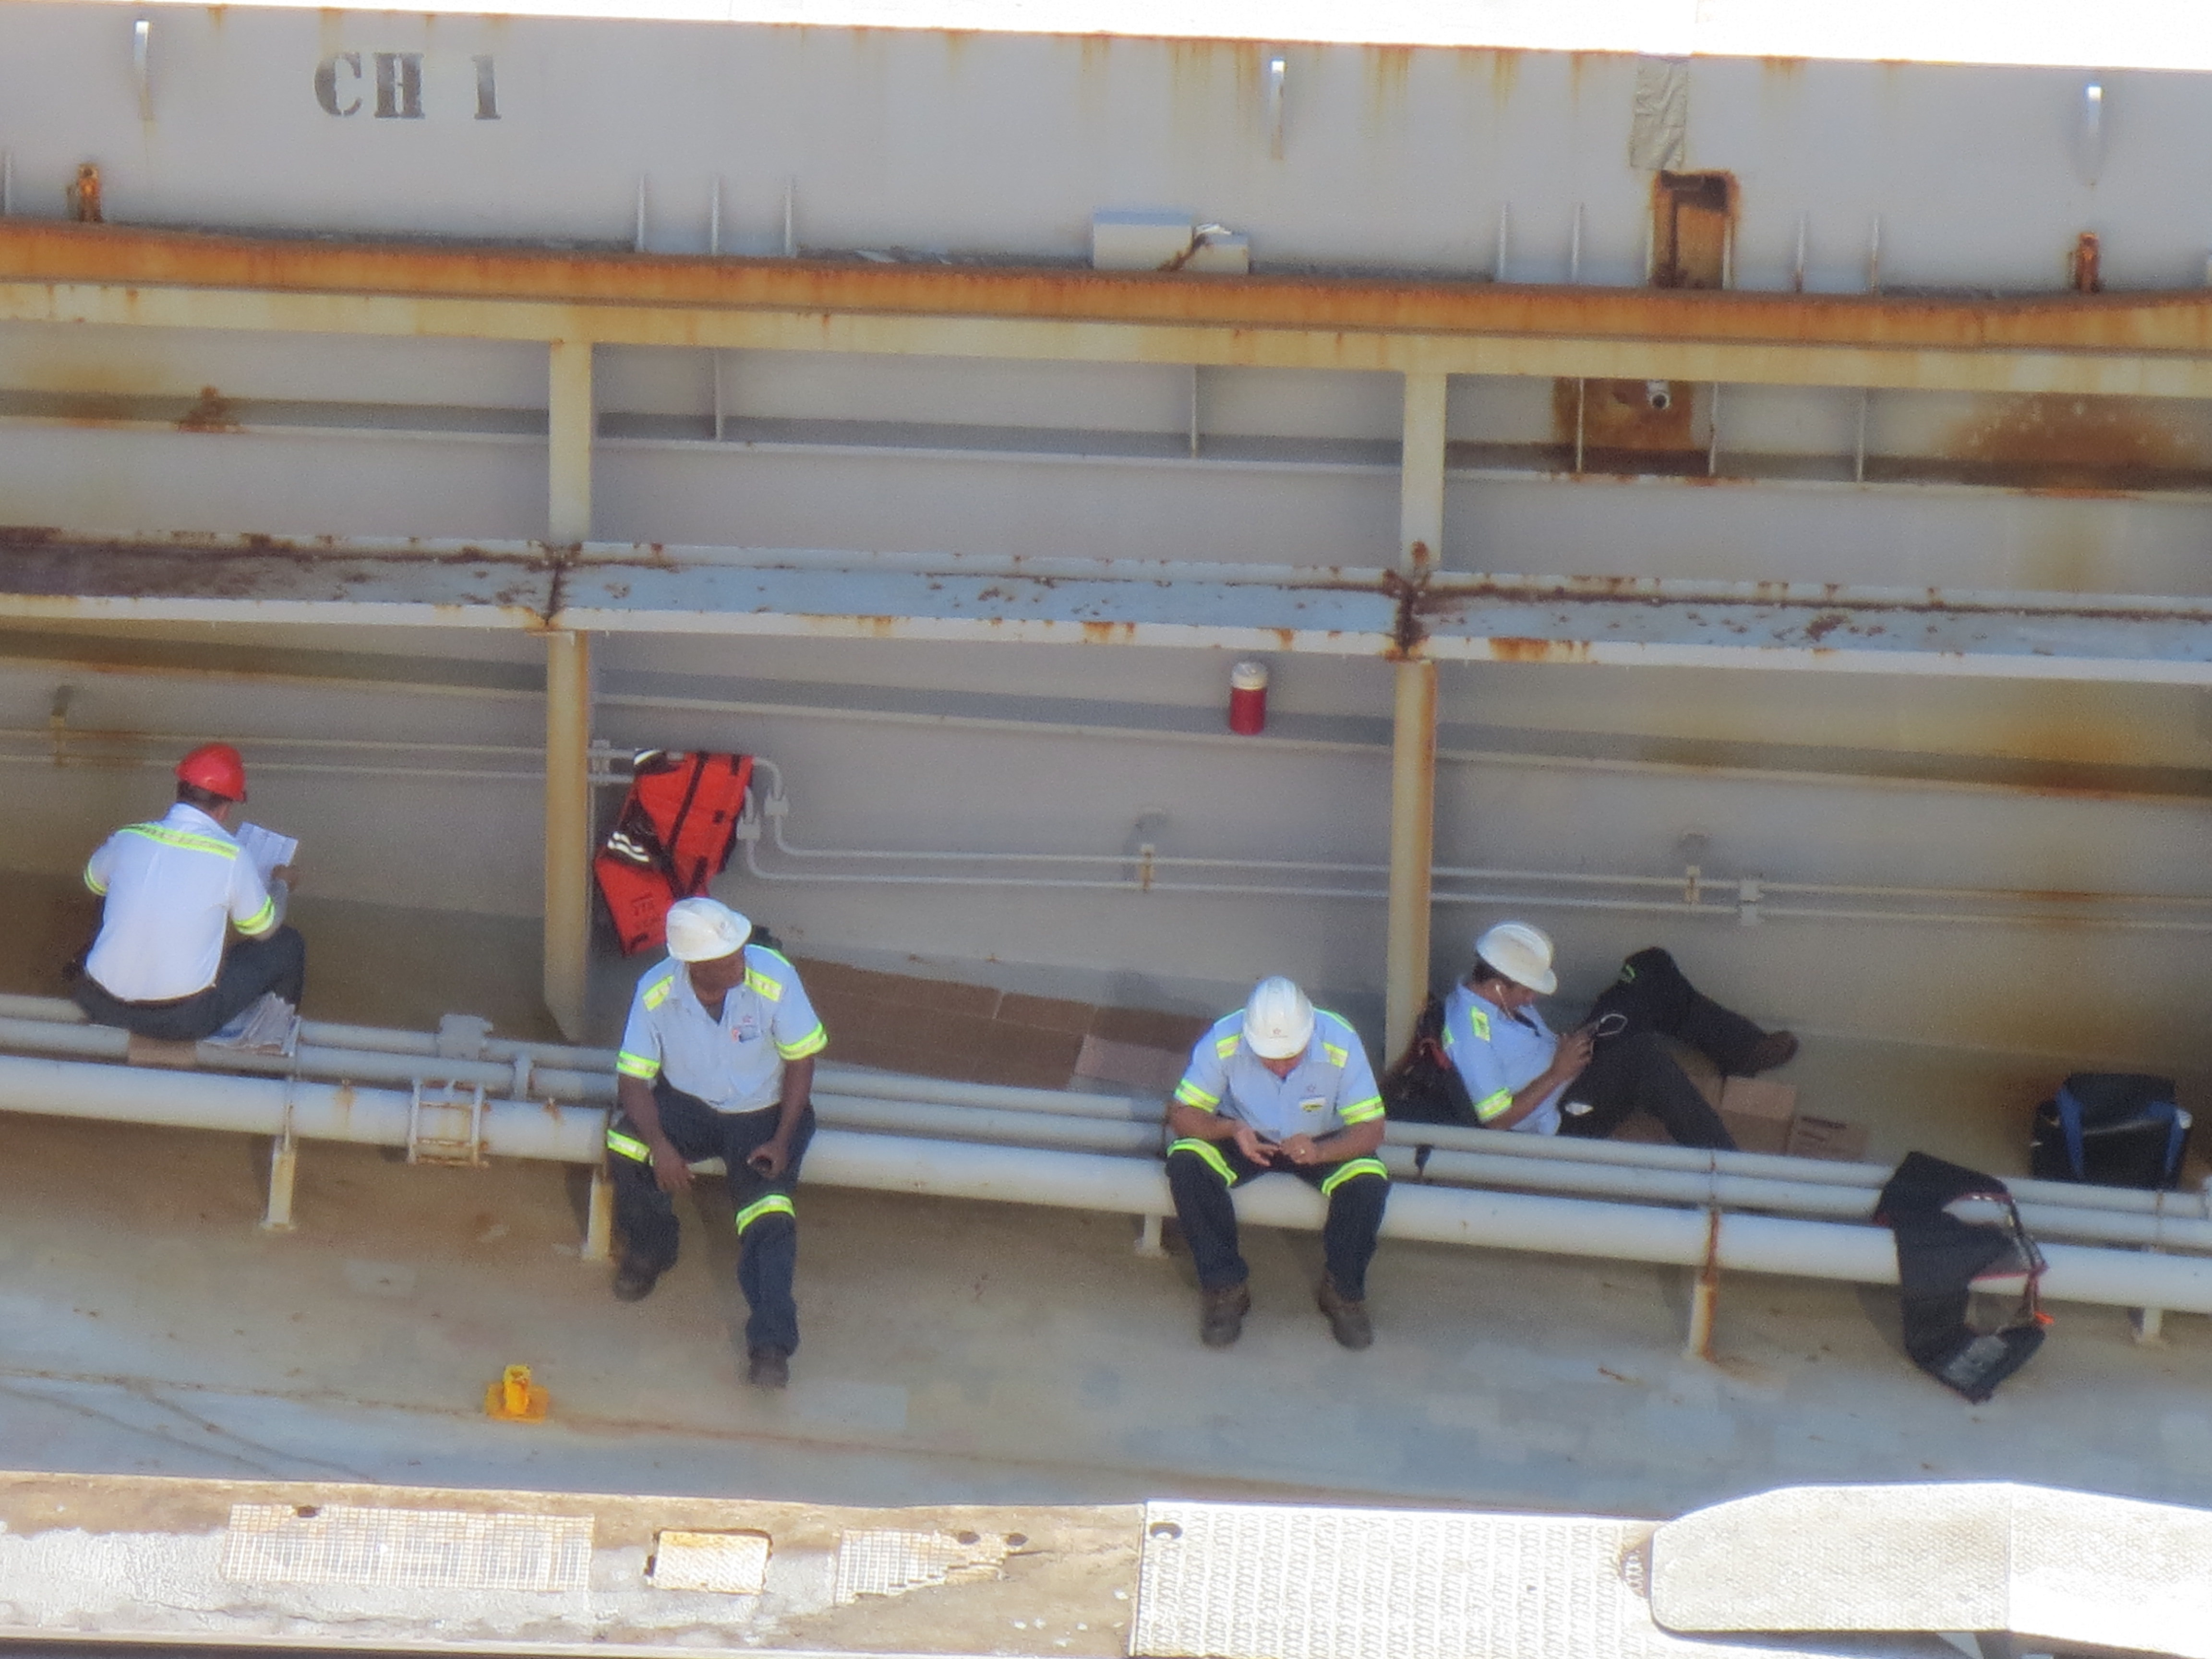 Panama Canal Authority aboard transiting vessel